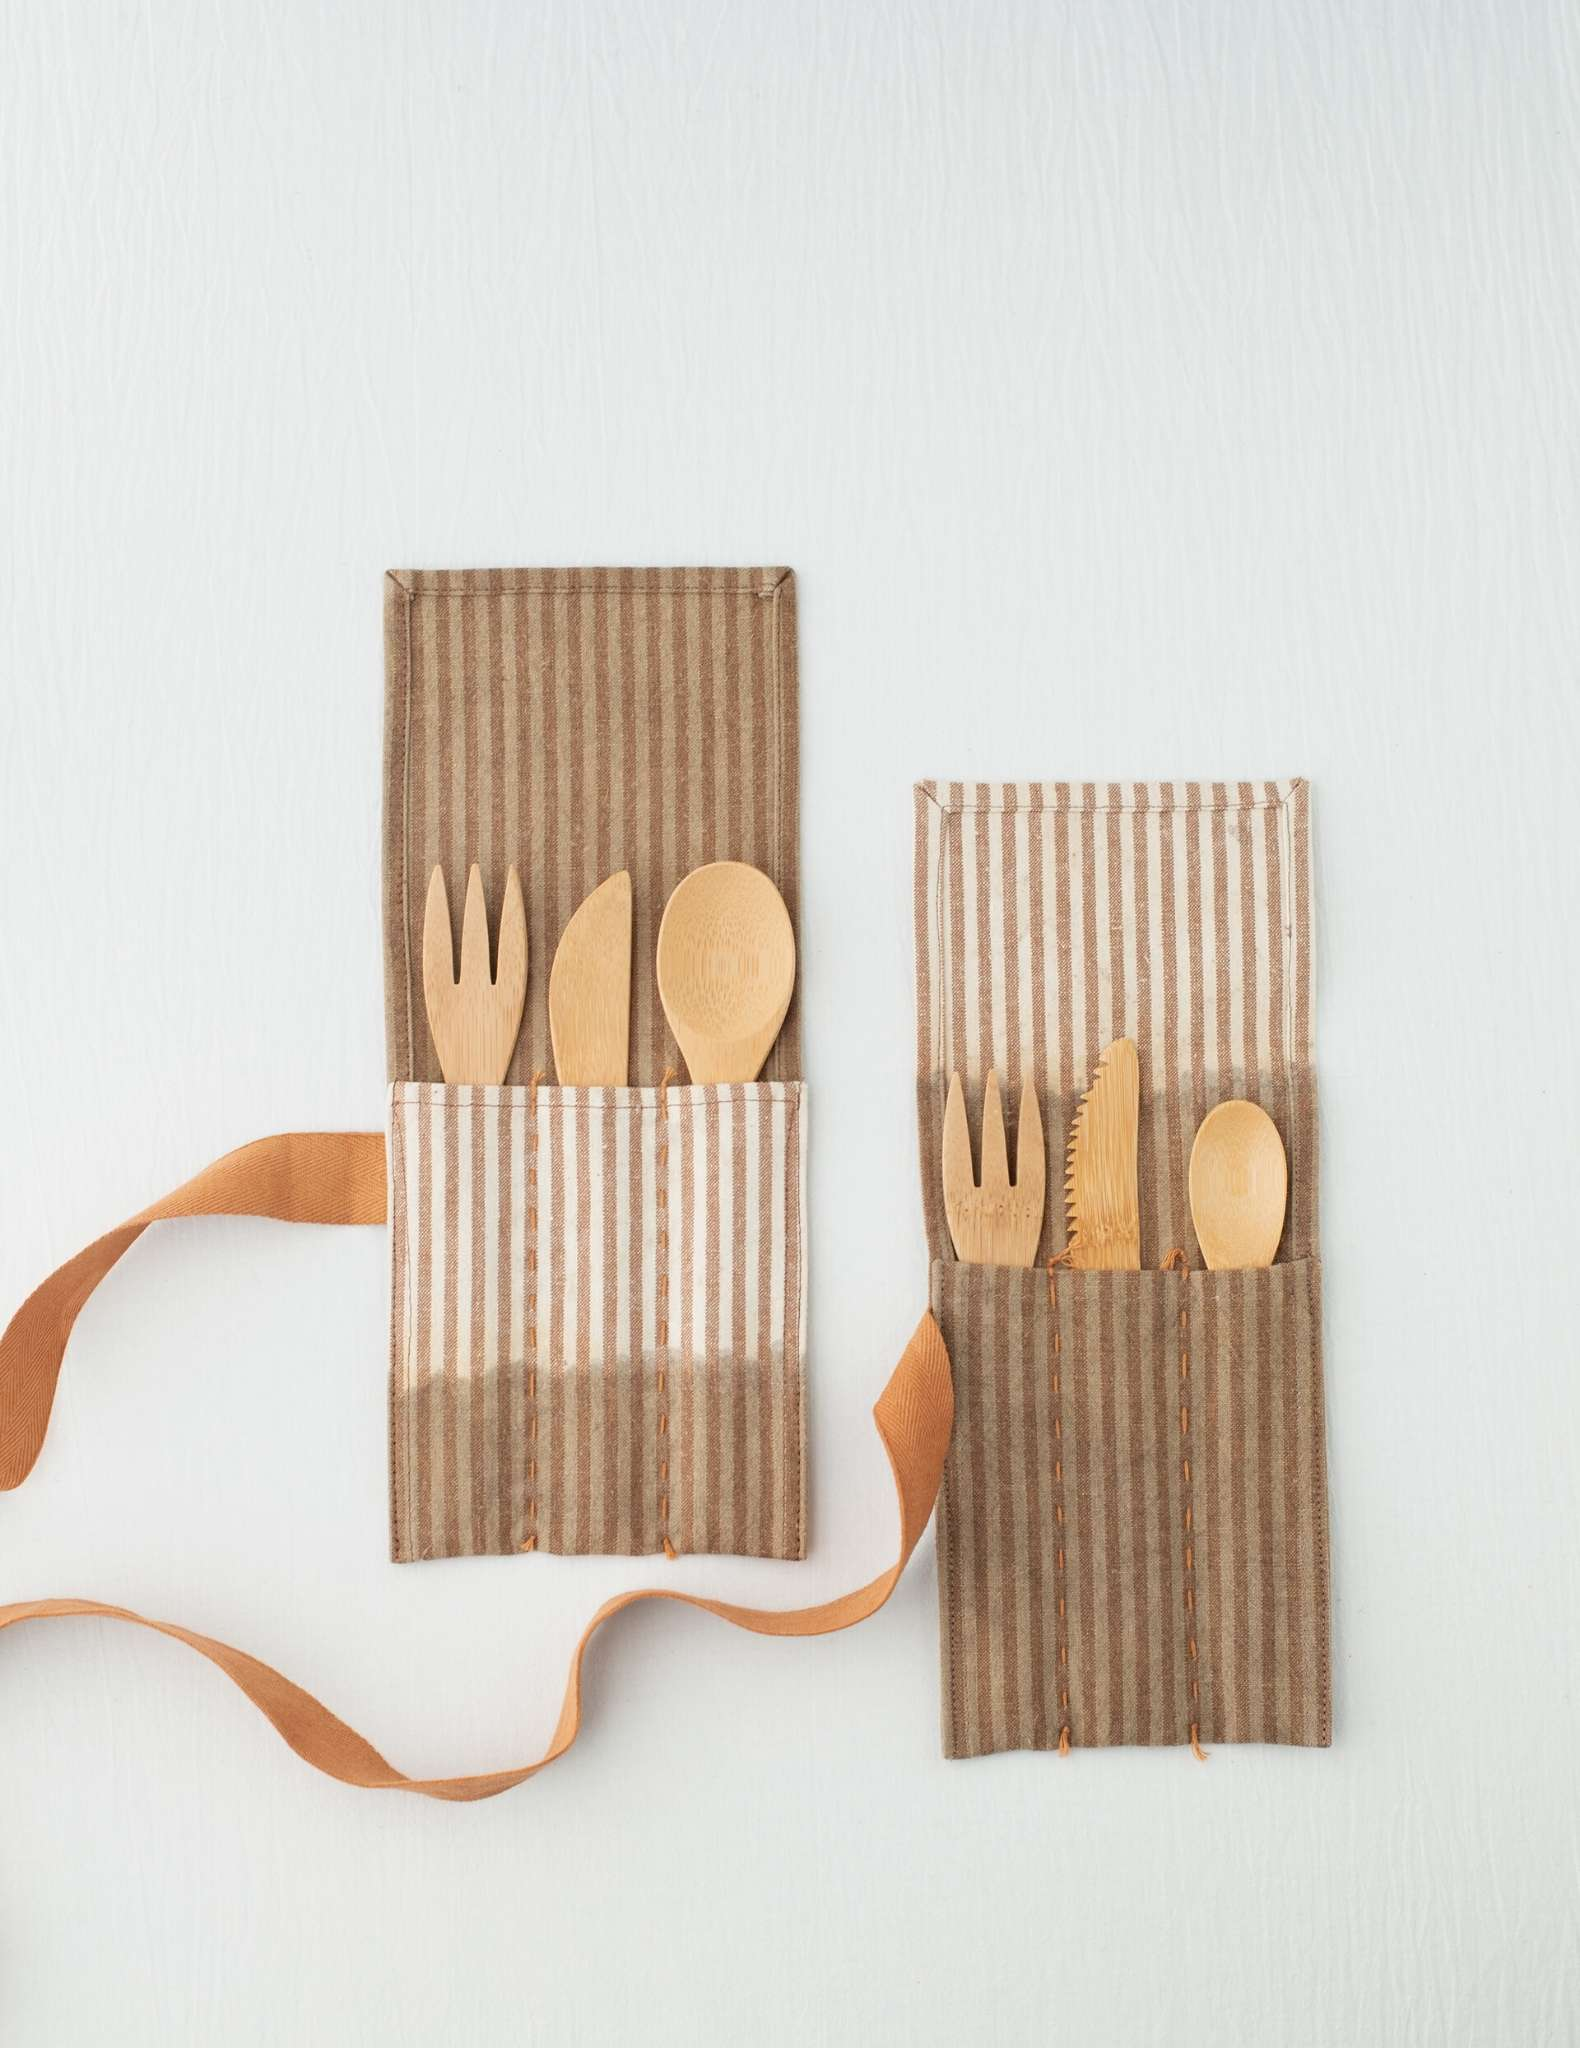 Two brown and natural patterned utensil rolls laying flat on a white surface with ribbon closures hanging to the side. They are filled with a wooden fork, knife and spoon each.